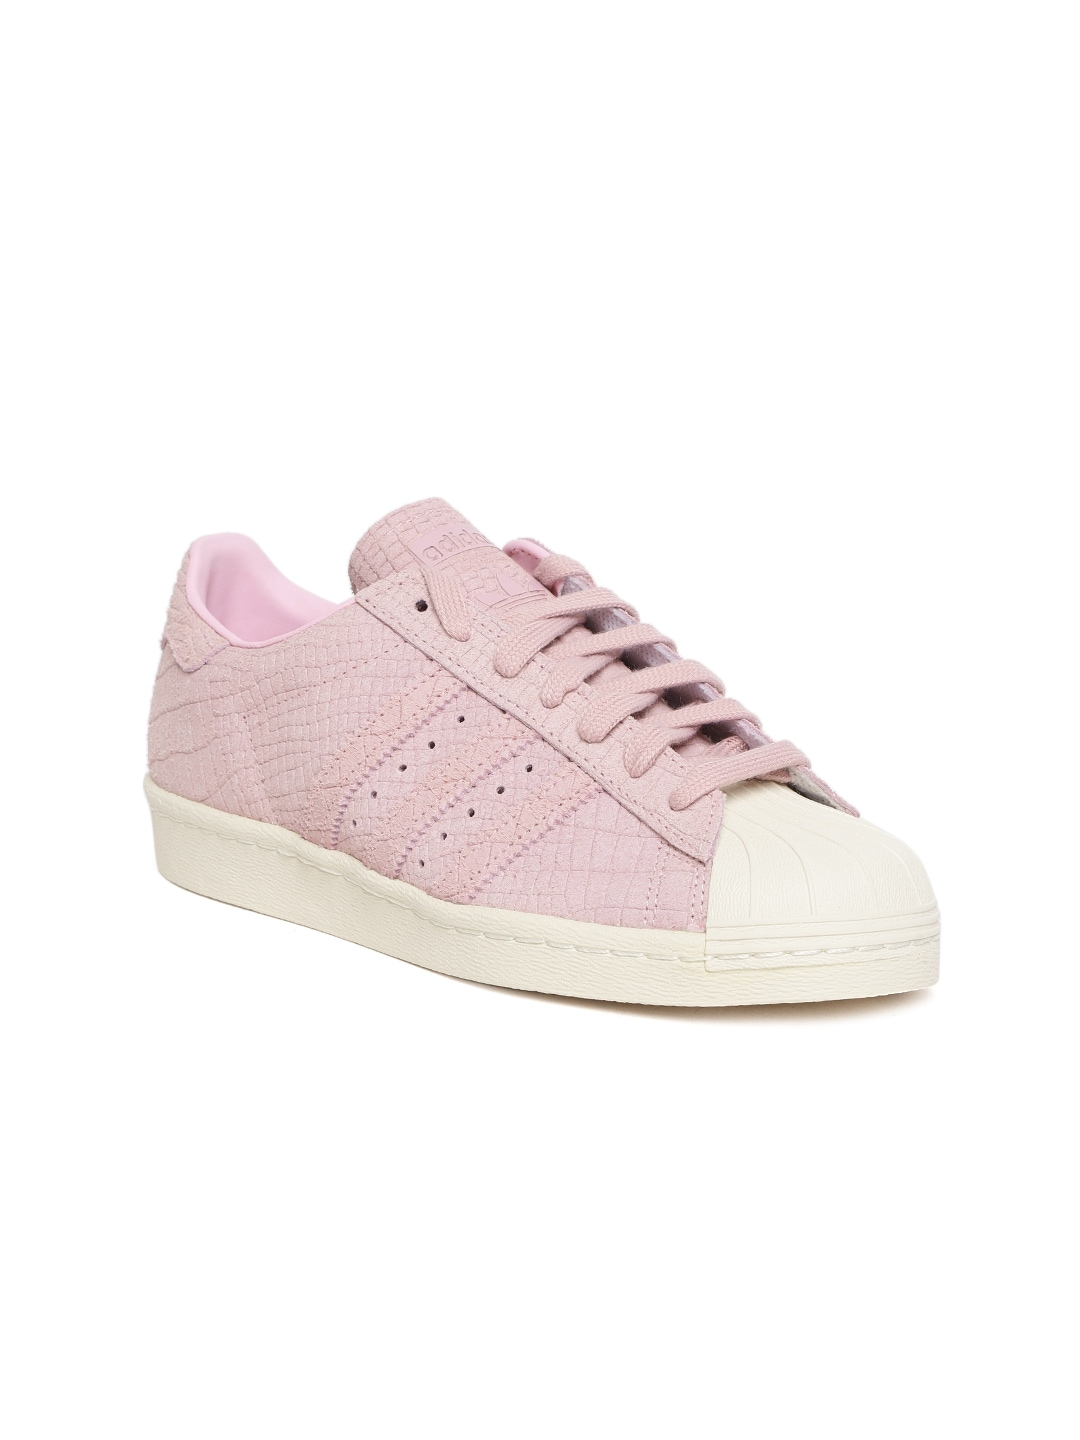 d66a7c574 Adidas Originals Superstar Shoes - Buy Adidas Originals Superstar Shoes  online in India